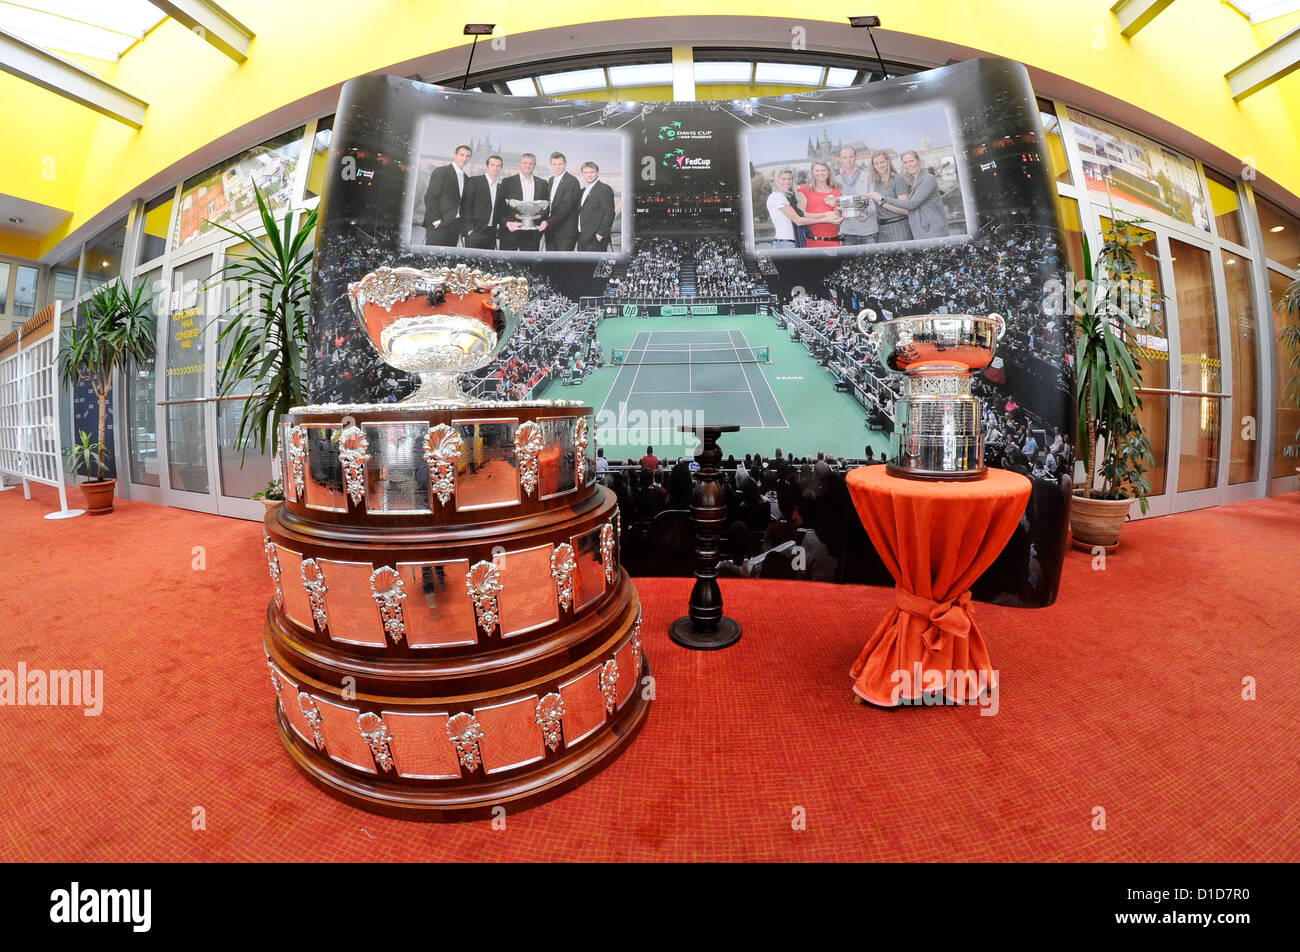 Fed Cup (left) and Davis Cup (right), tennis trophy won by the Czech tennis players this year exhibited in Prostejov, - Stock Image